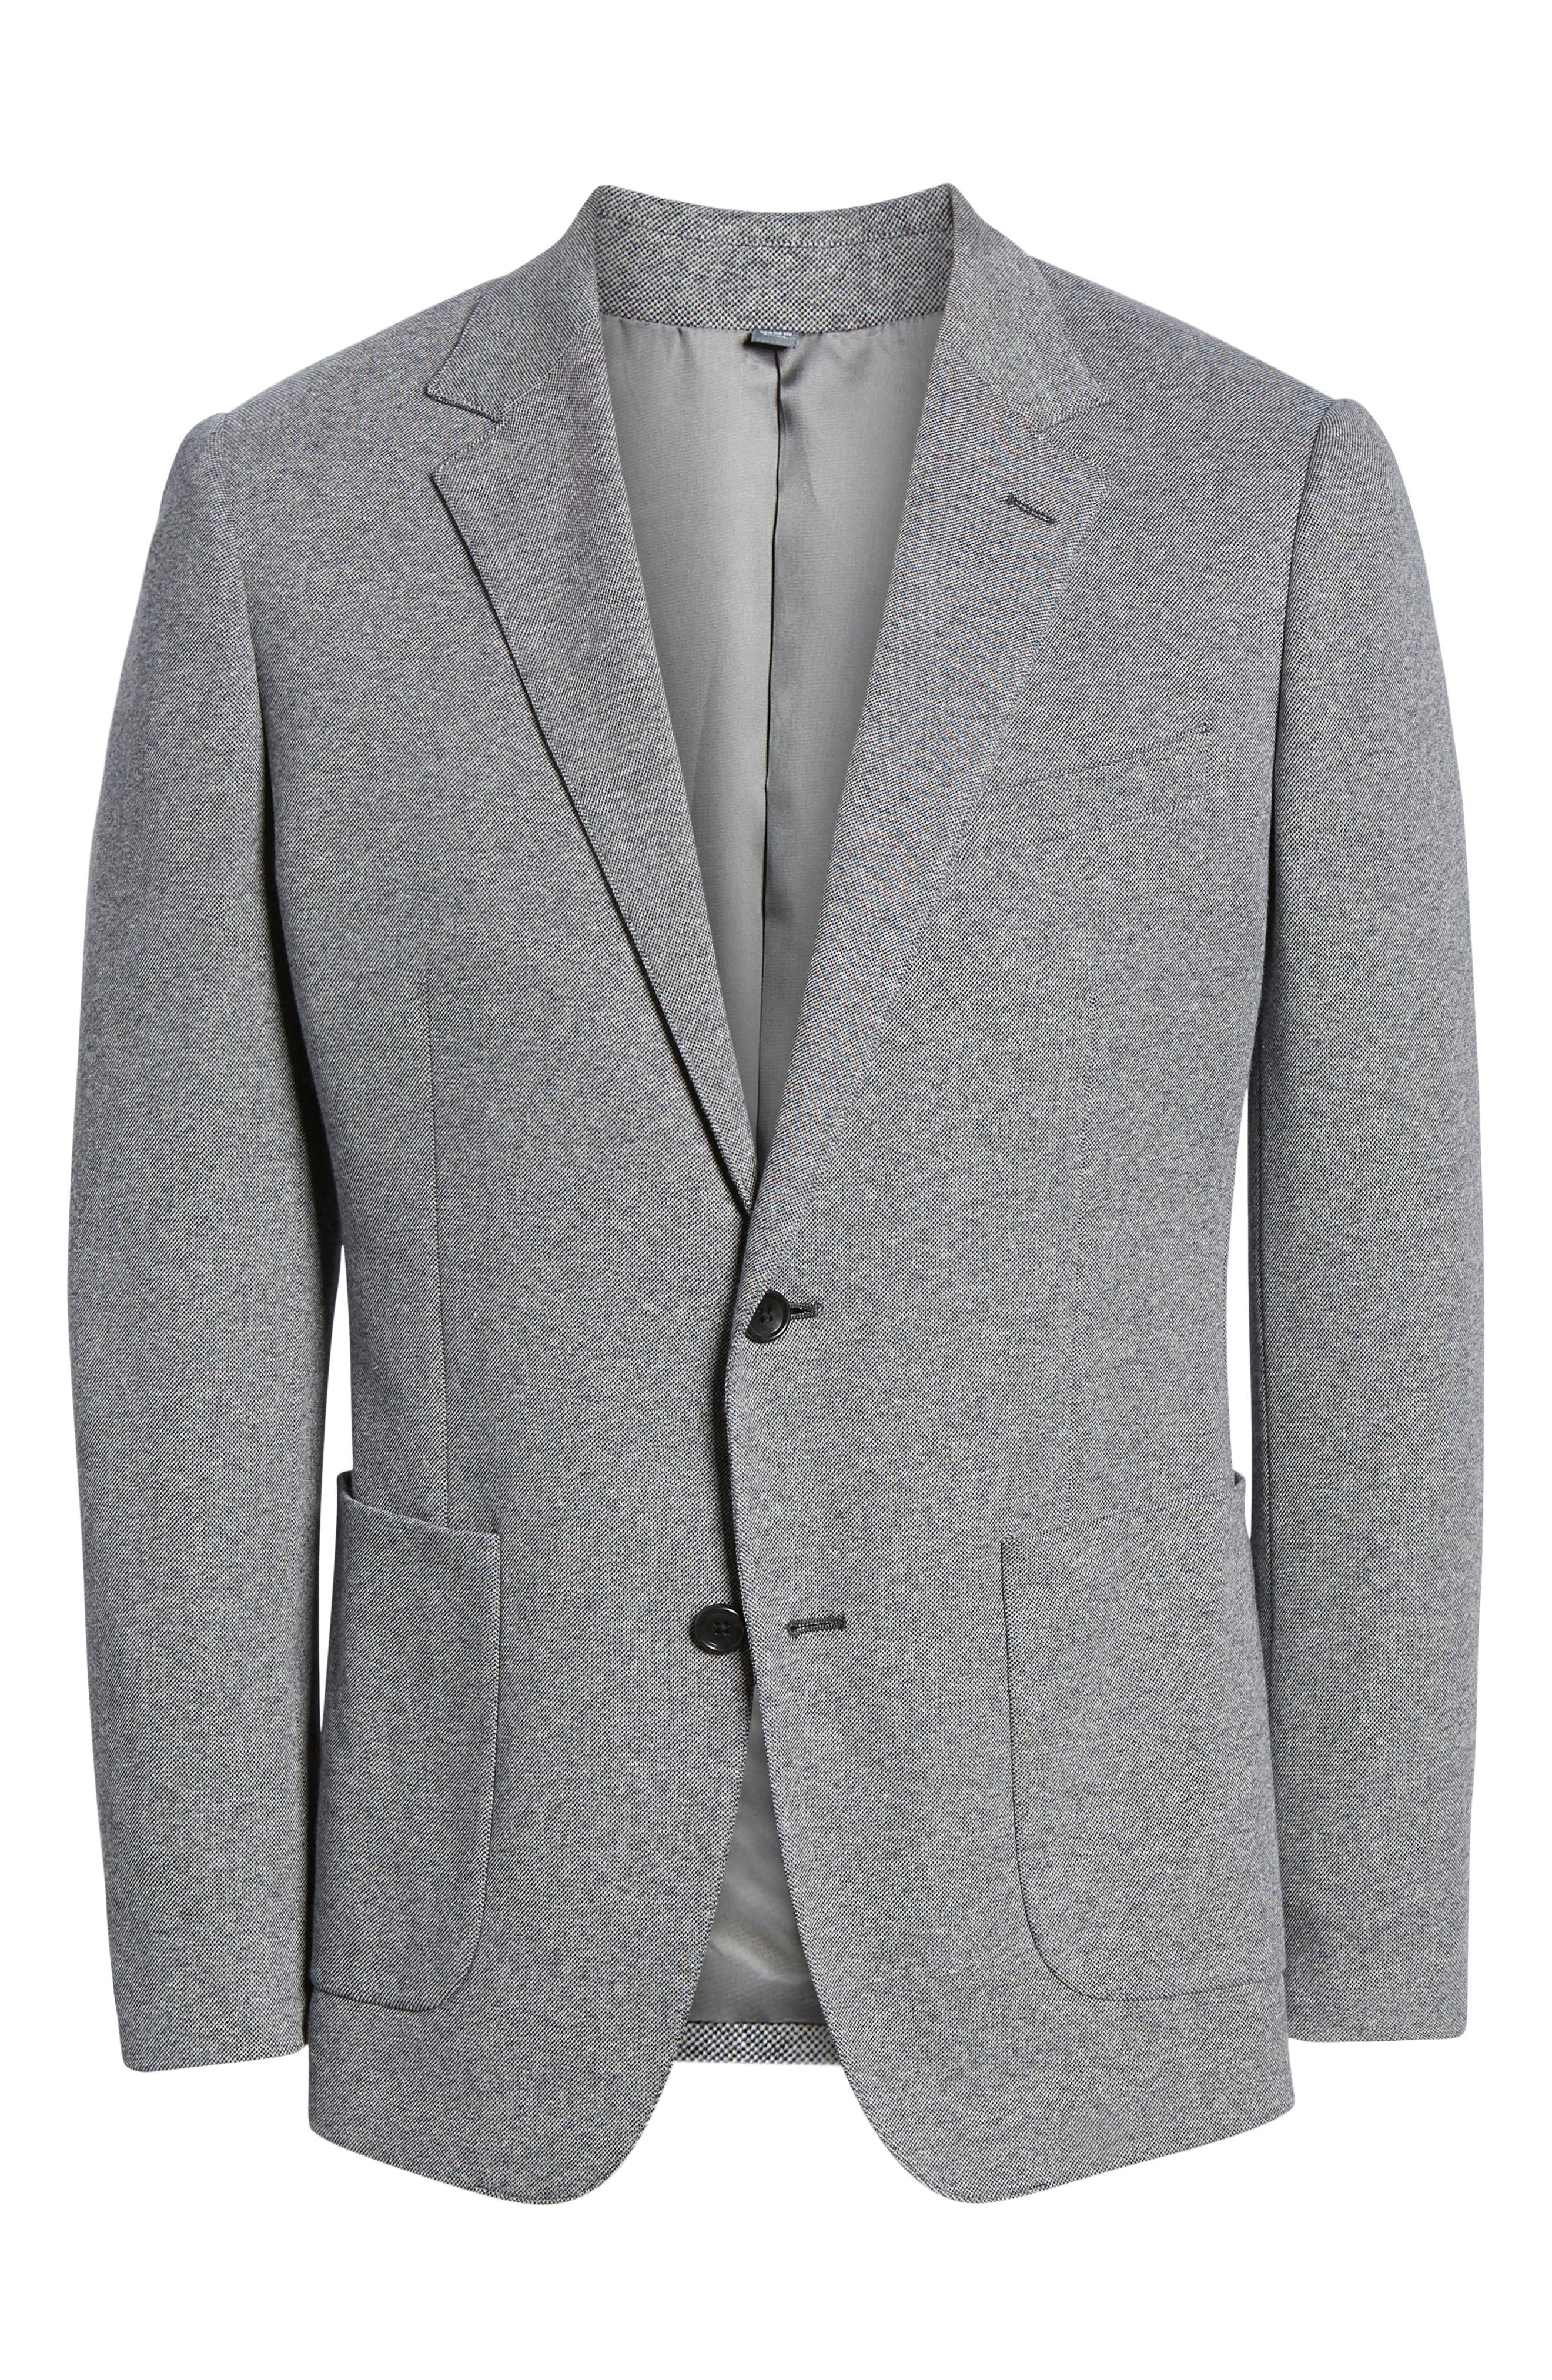 Jetsetter Trim Fit Knit Cotton Sport Coat,                             Alternate thumbnail 5, color,                             LIGHT GREY